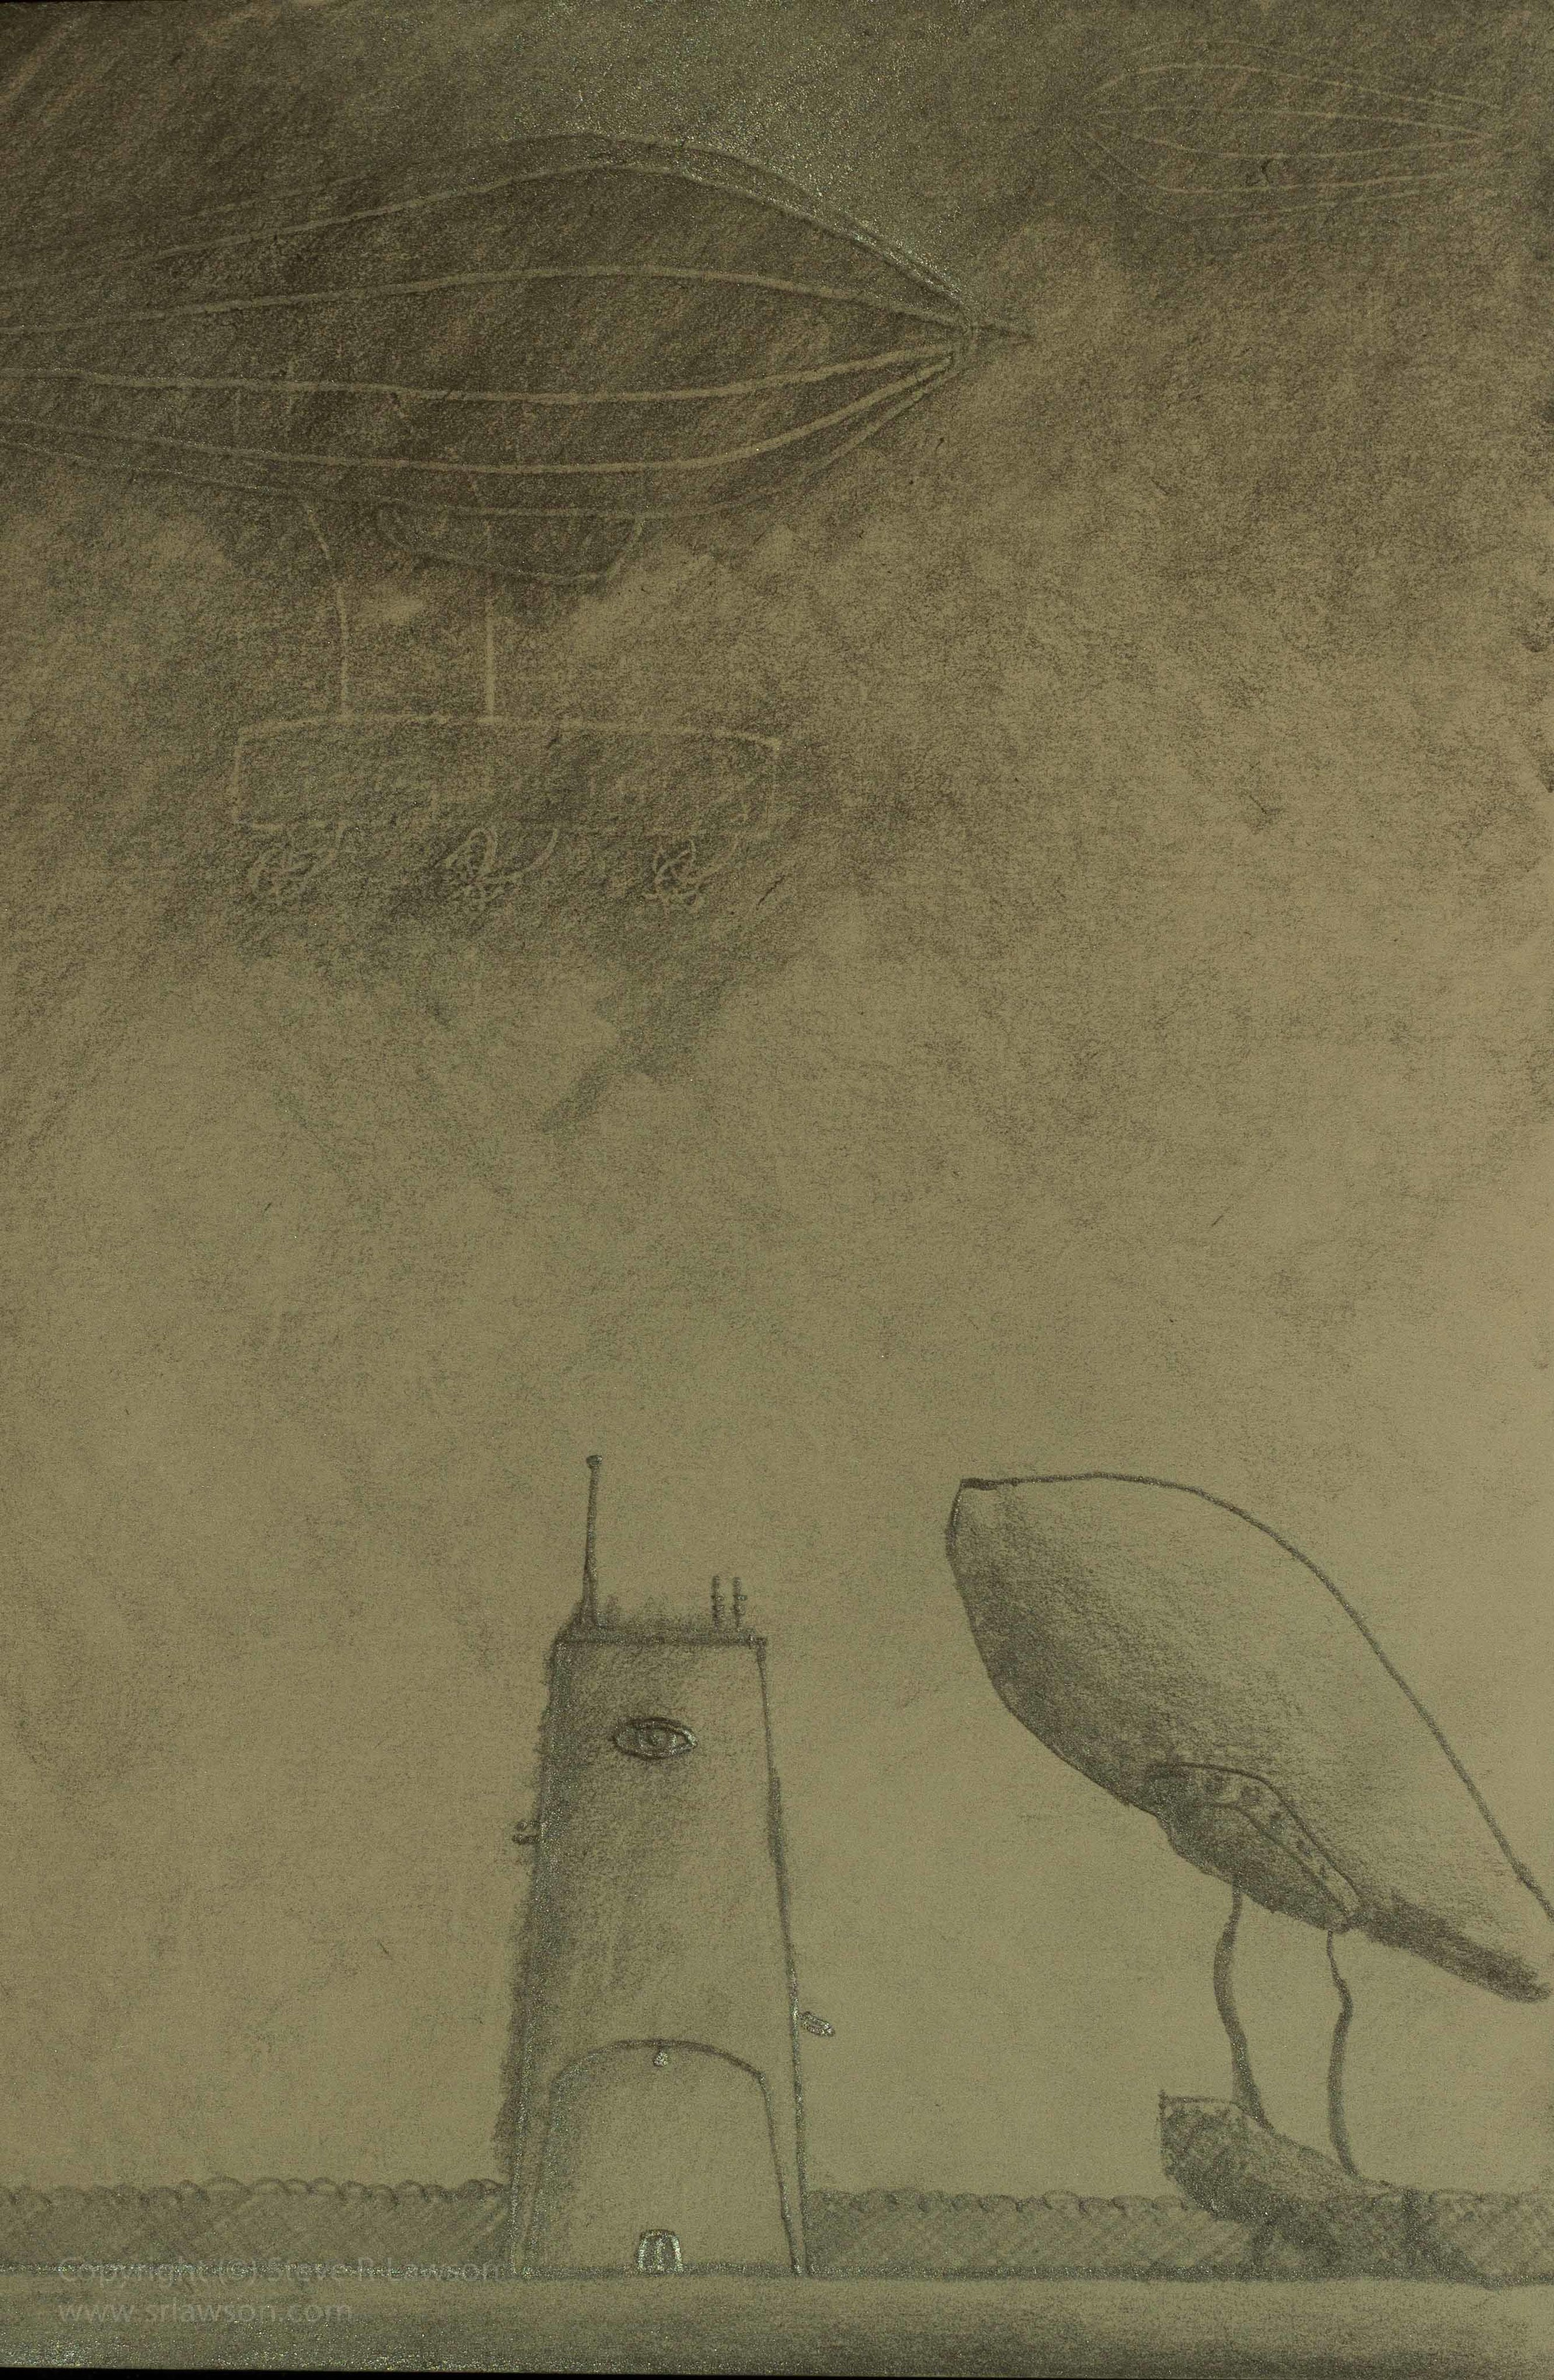 Sketch of Two Zeppelins